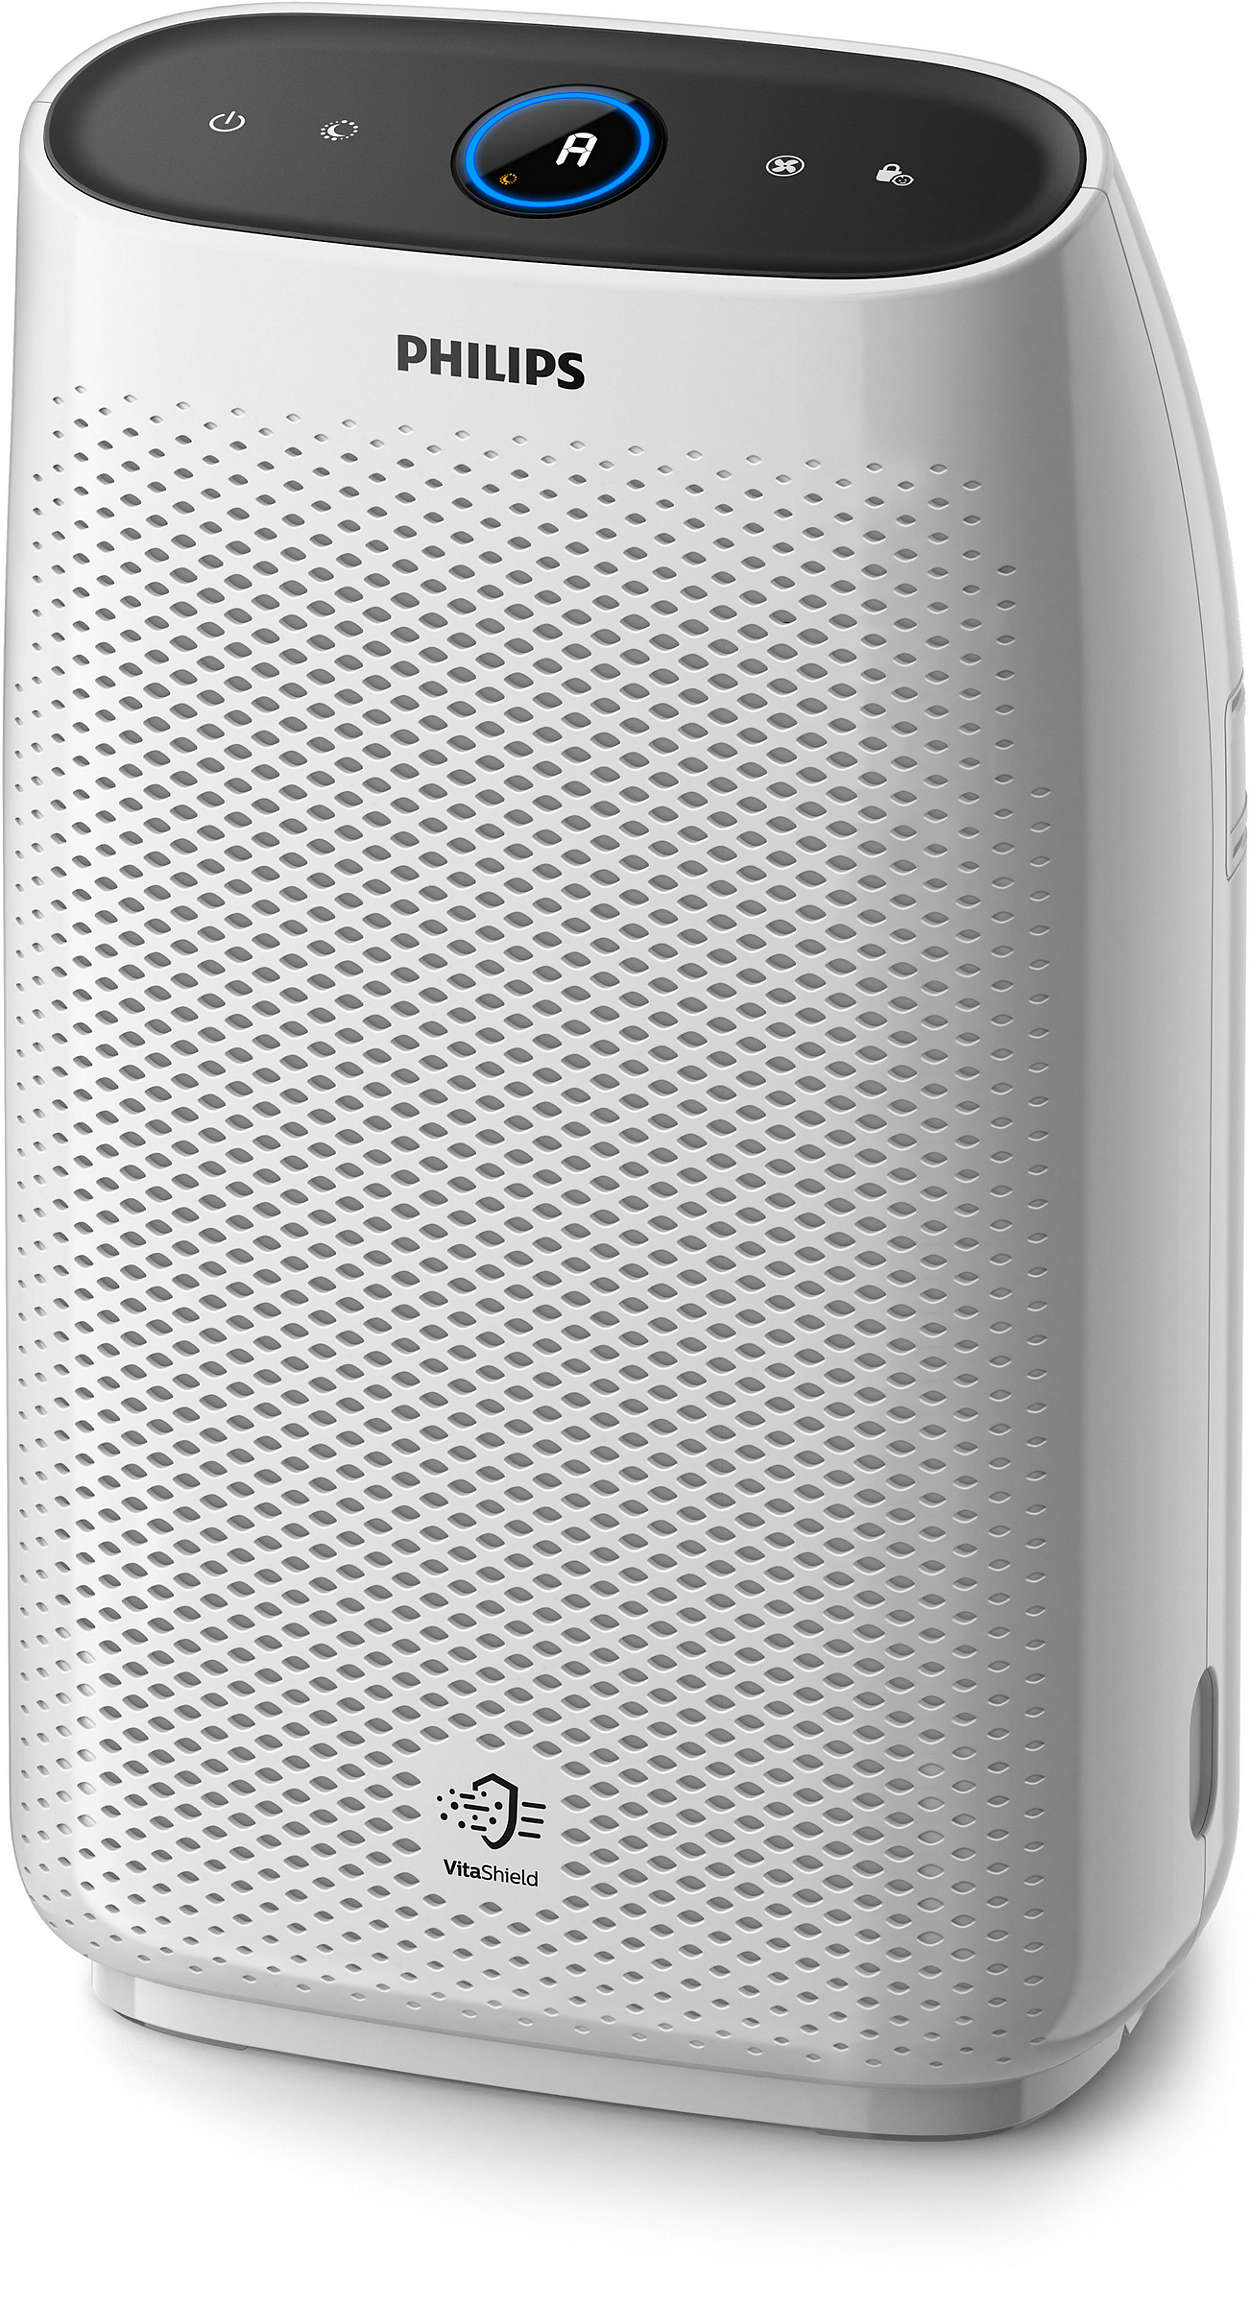 series 1000 air purifier ac1215 30 philips